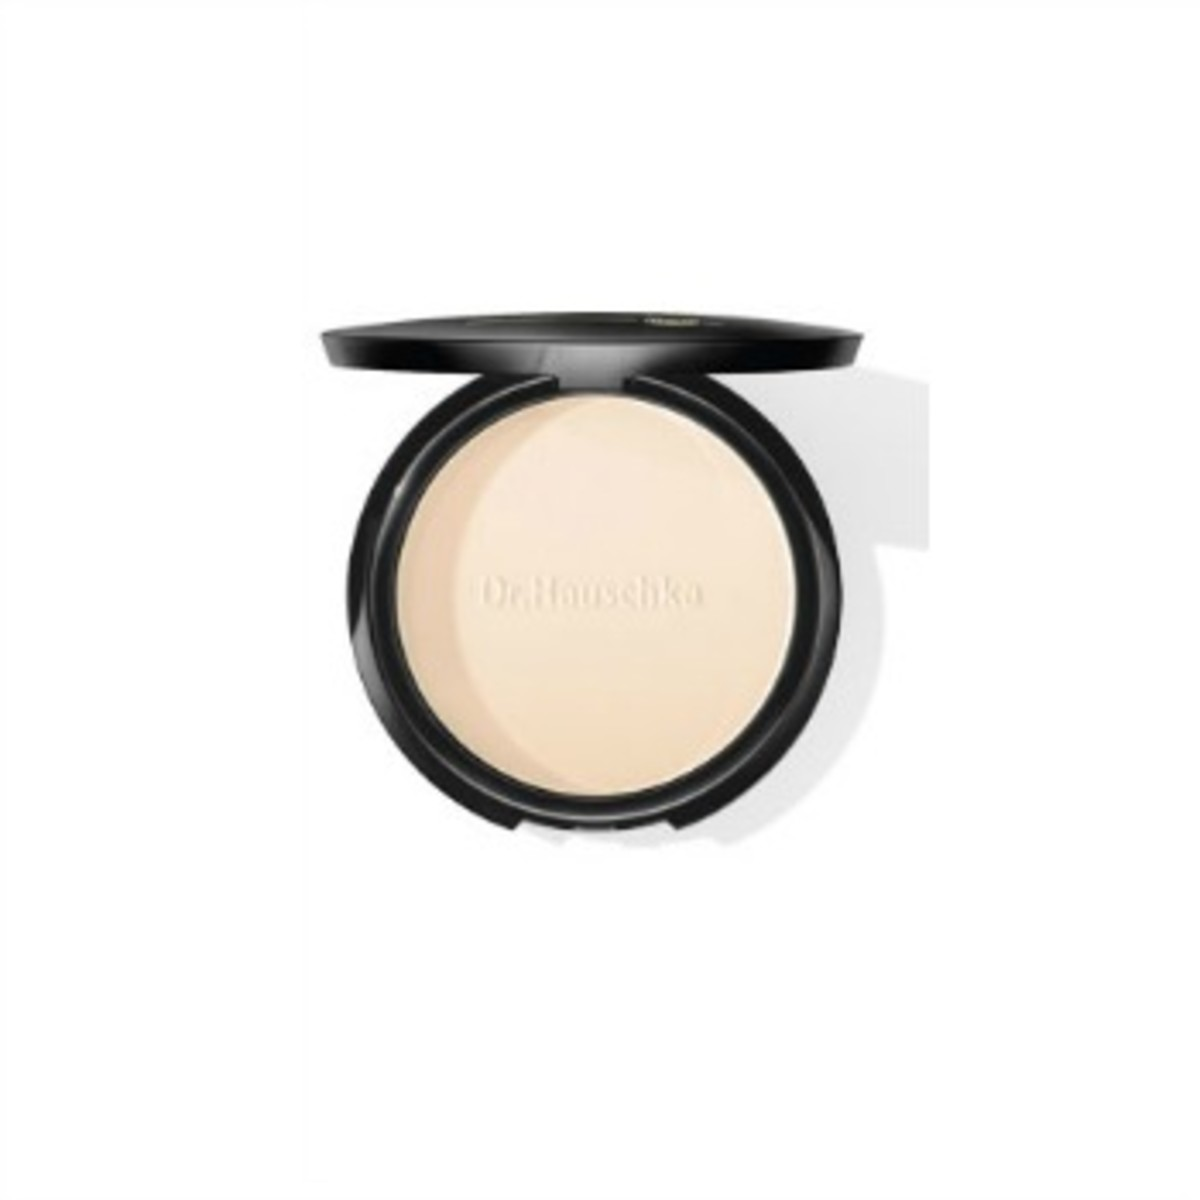 Dr. Hauschka Pressed Powder